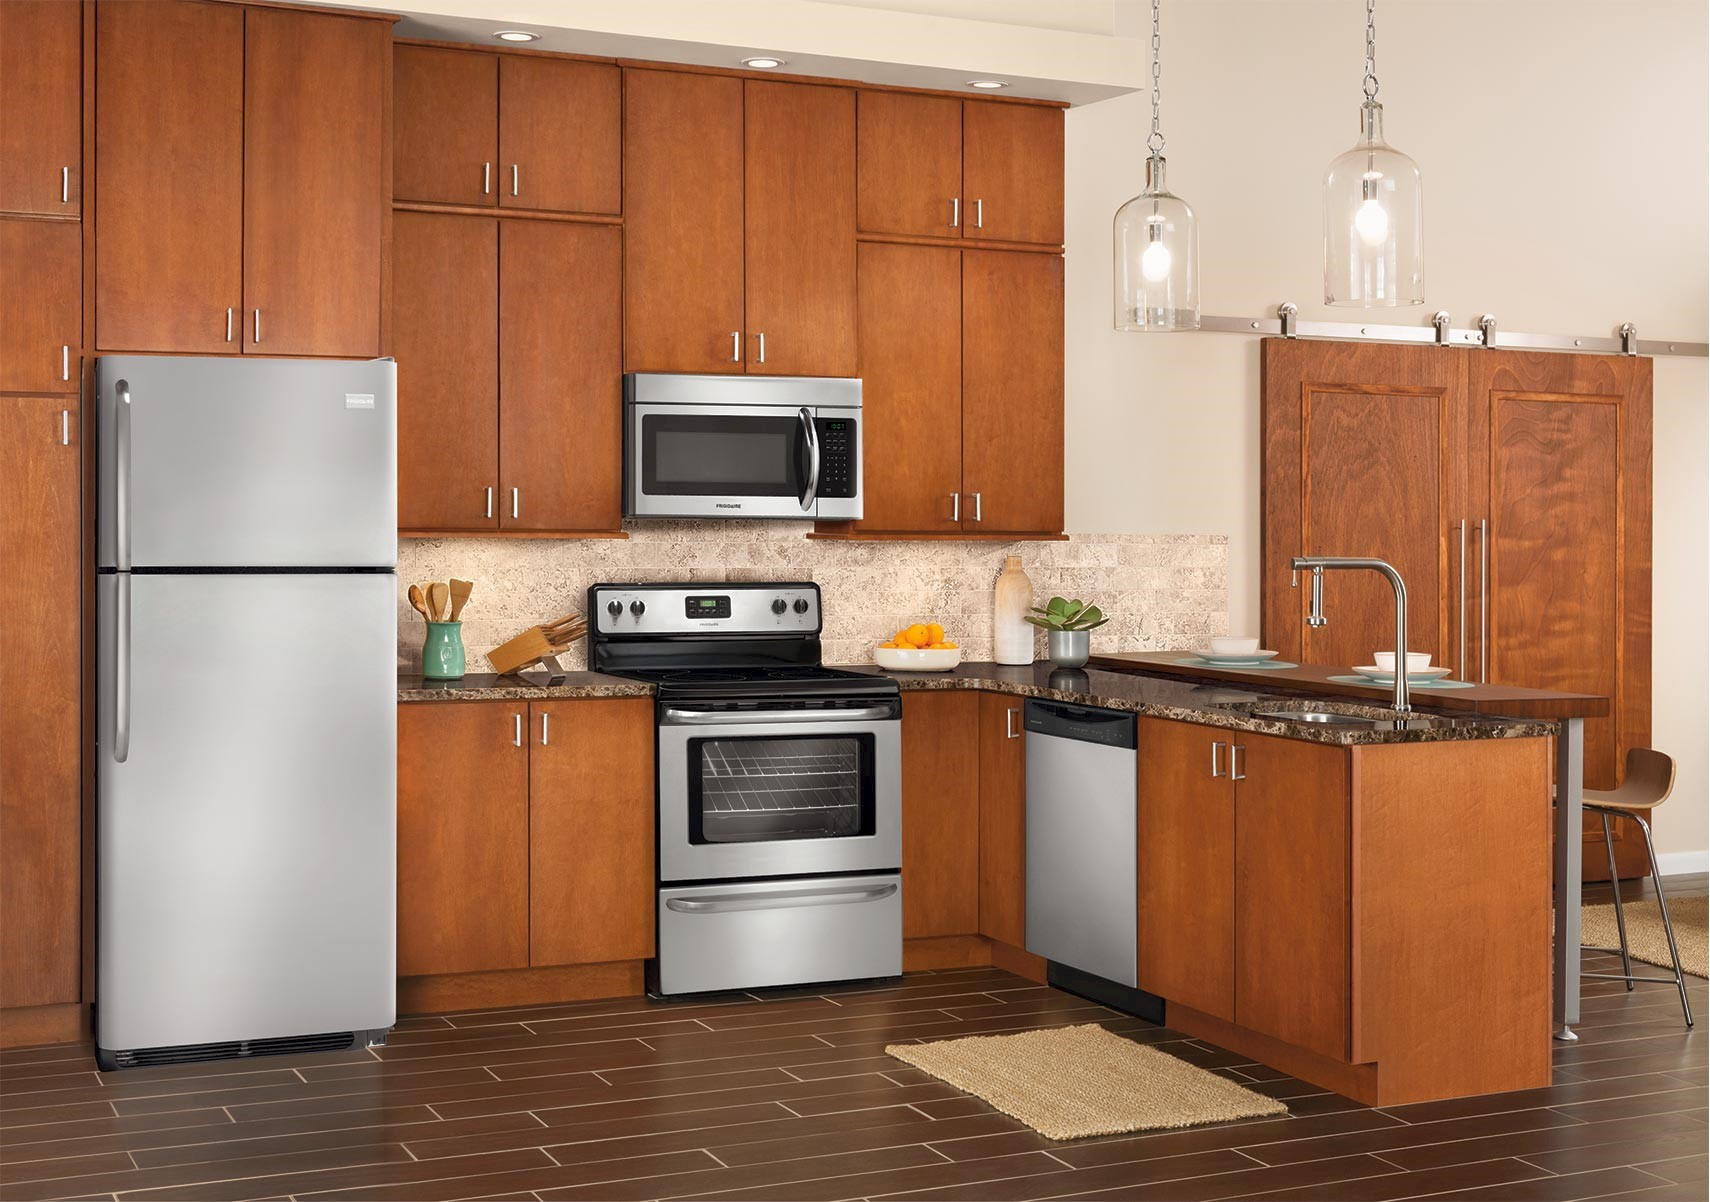 Lacks | Frigidaire Stainless Steel Kitchen Appliance Package with ...